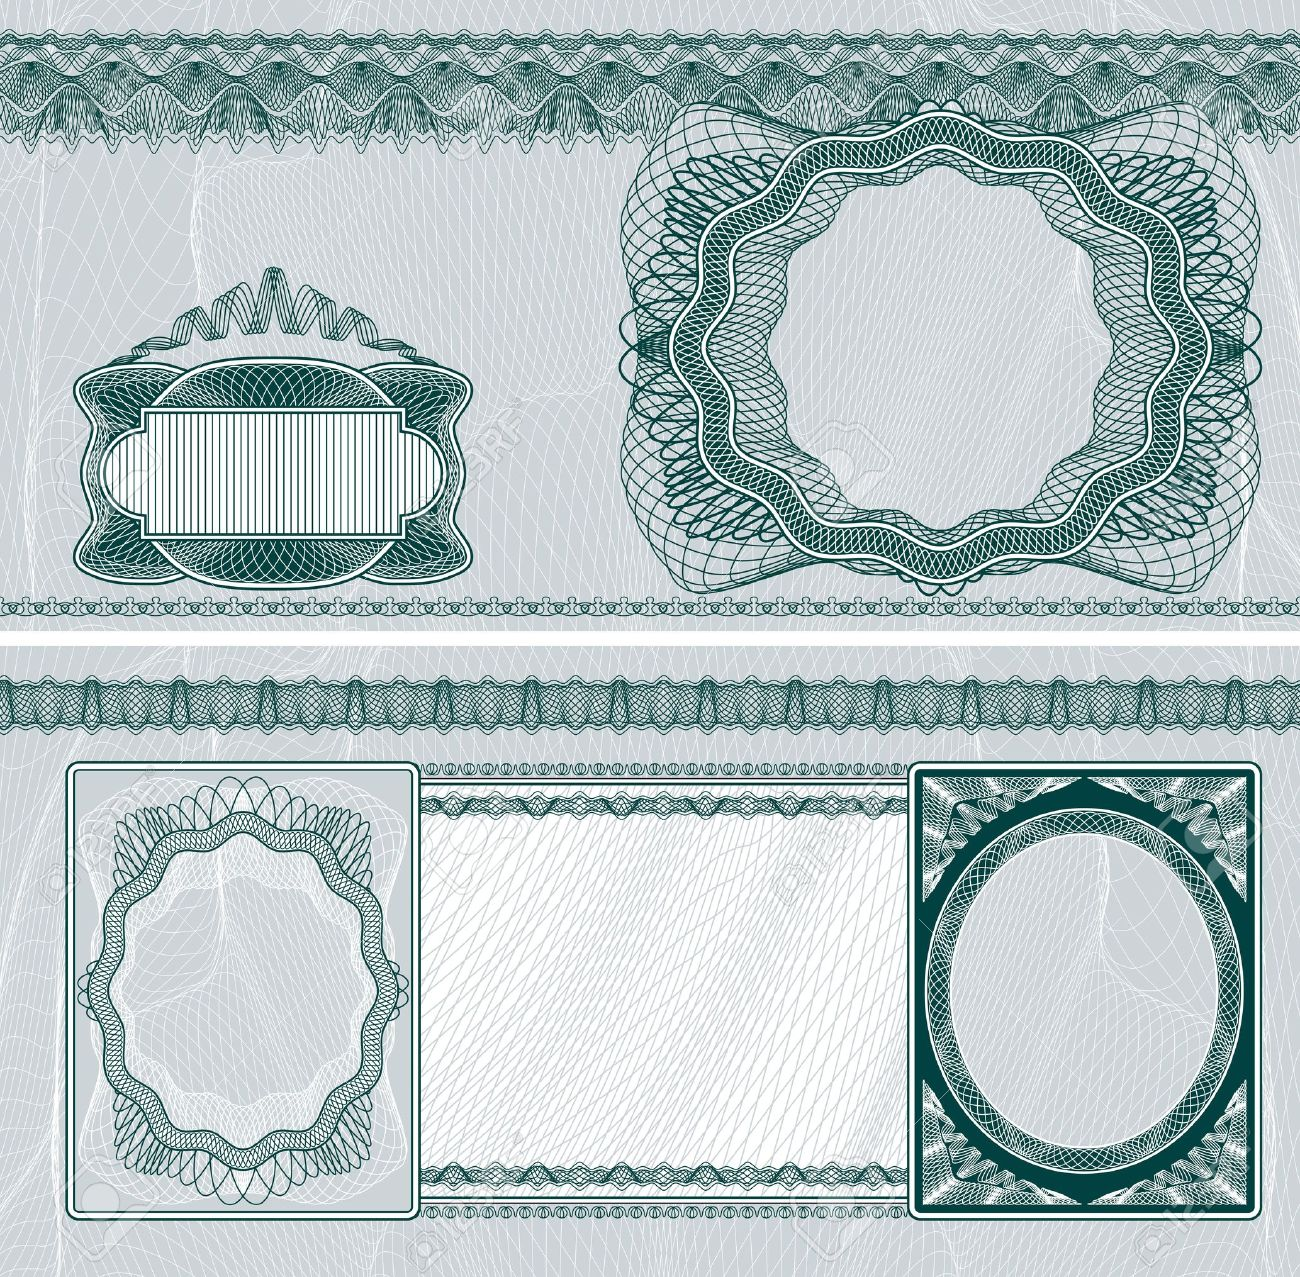 Blank Layout For Banknote Bank Check Or Voucher With Obverse – Blank Voucher